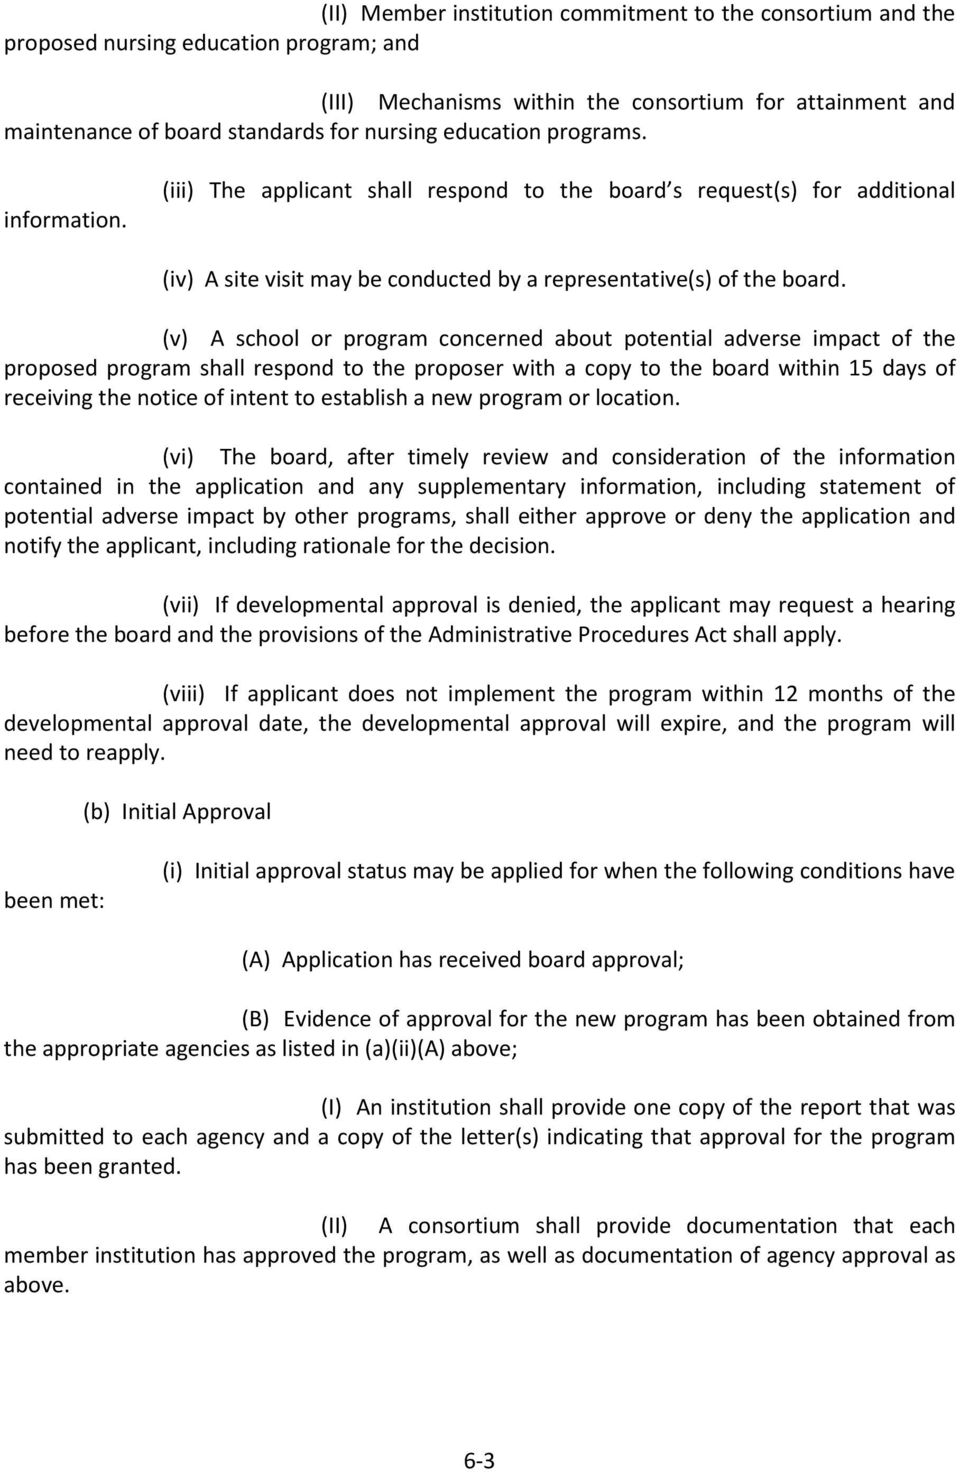 (v) A school or program concerned about potential adverse impact of the proposed program shall respond to the proposer with a copy to the board within 15 days of receiving the notice of intent to